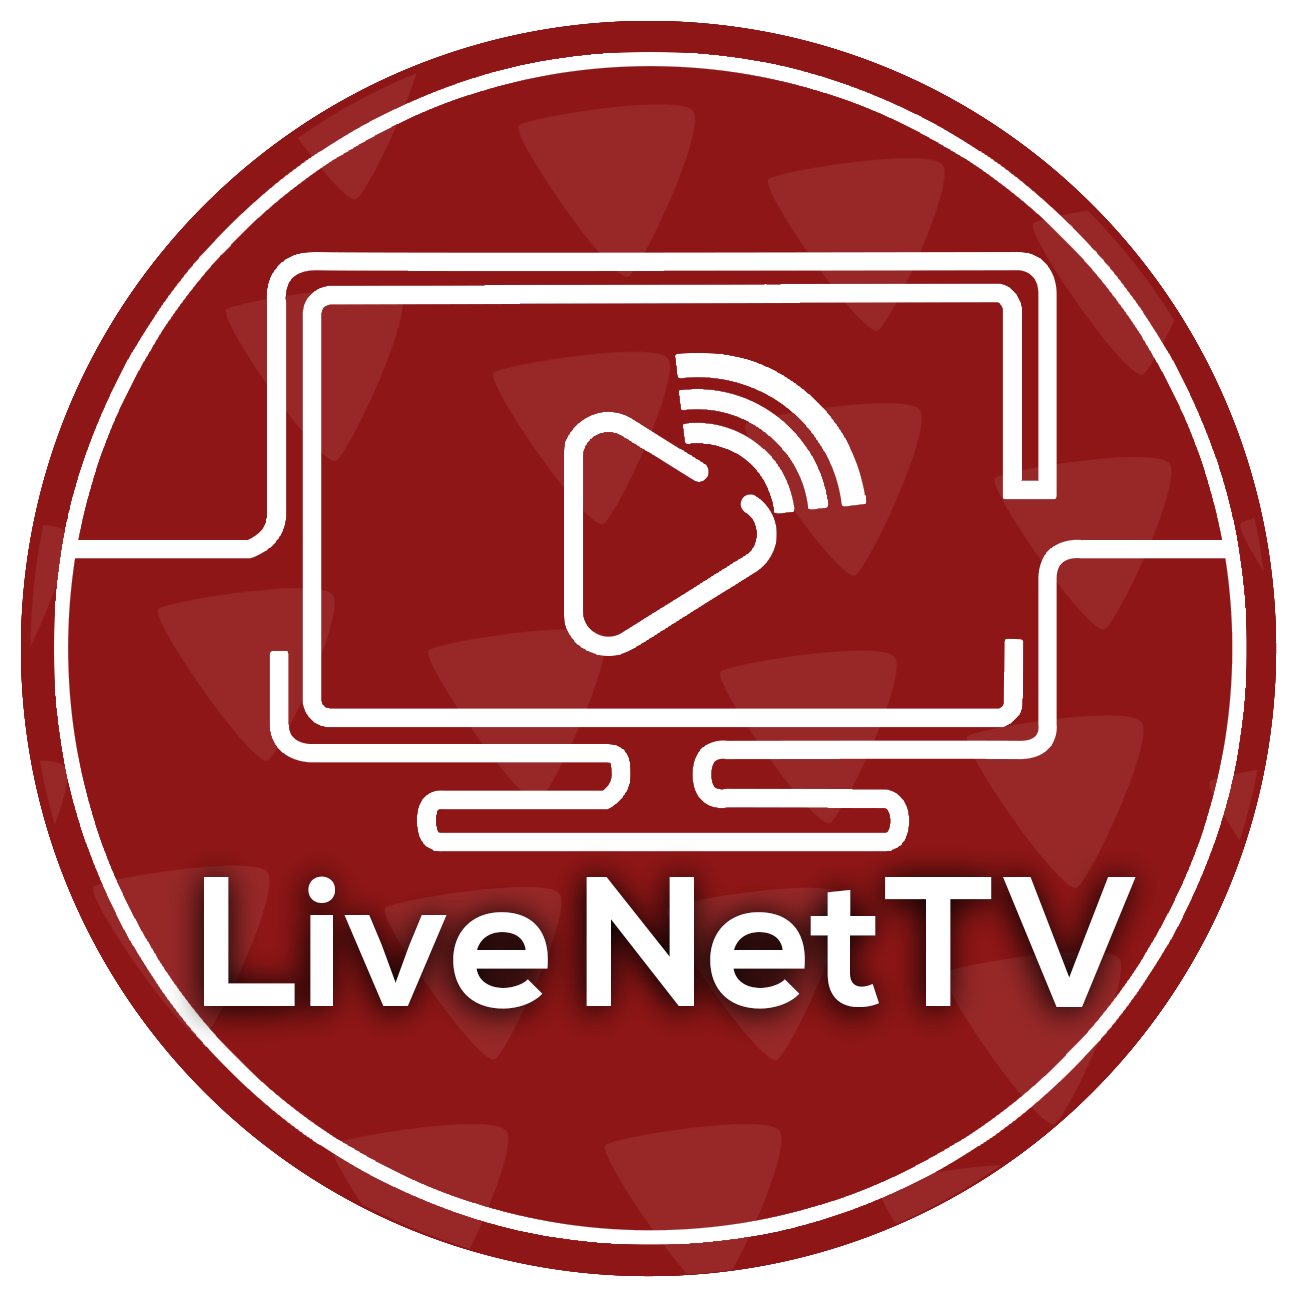 live net tv 4.7 apk download